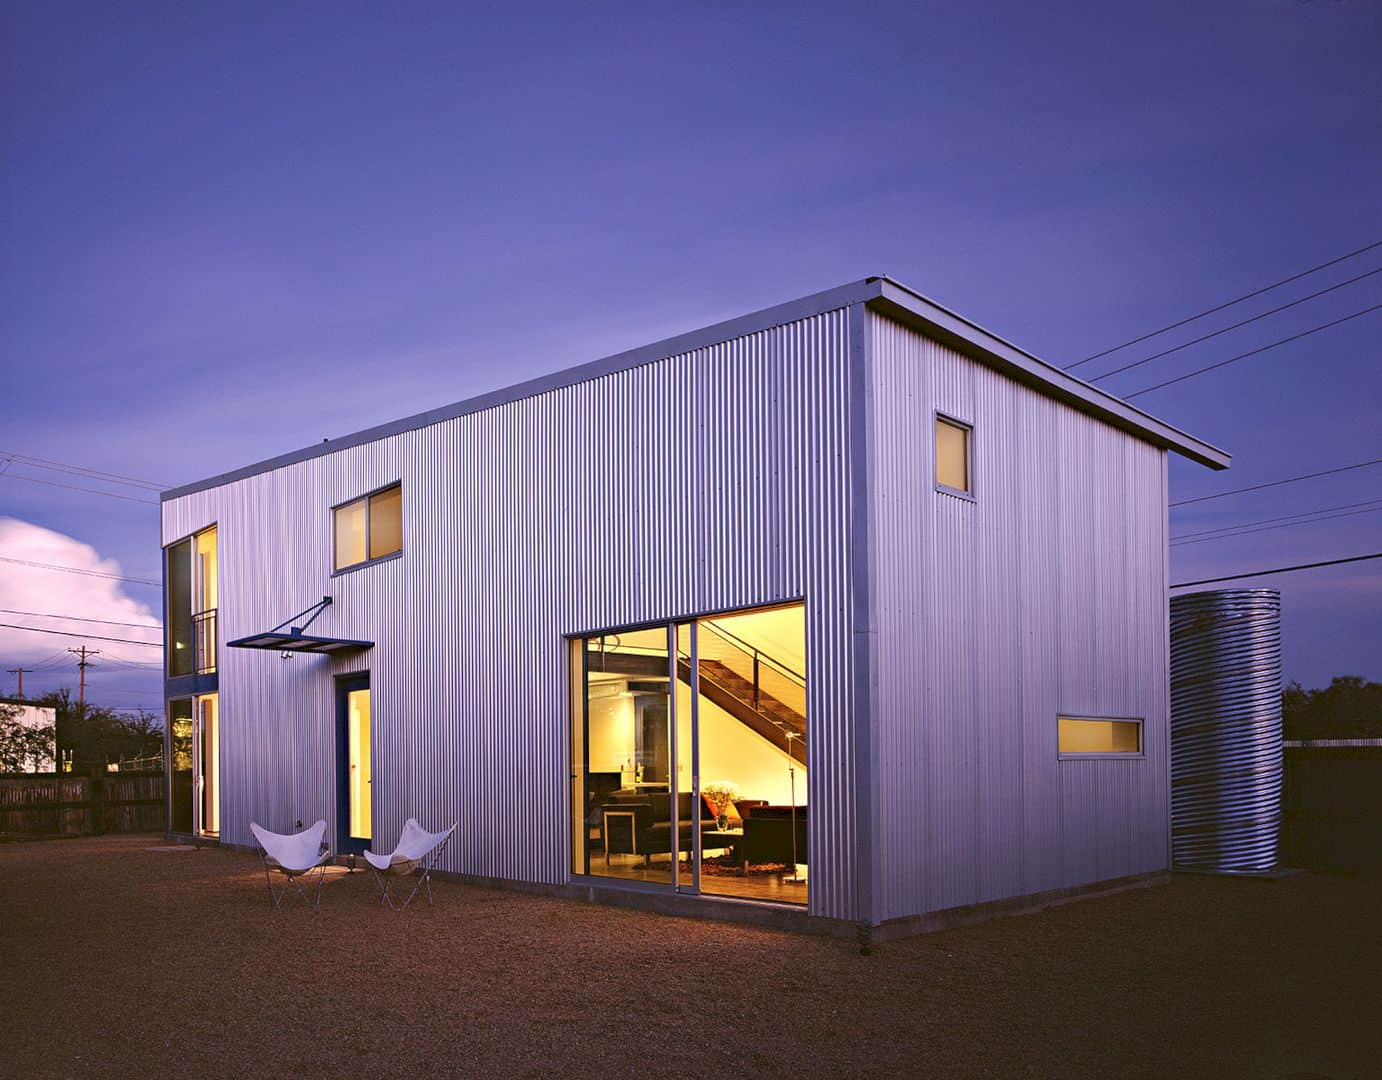 Barrio Metalico Nine Freestanding Houses Within Millvilles Industrial And Residential Environment 9